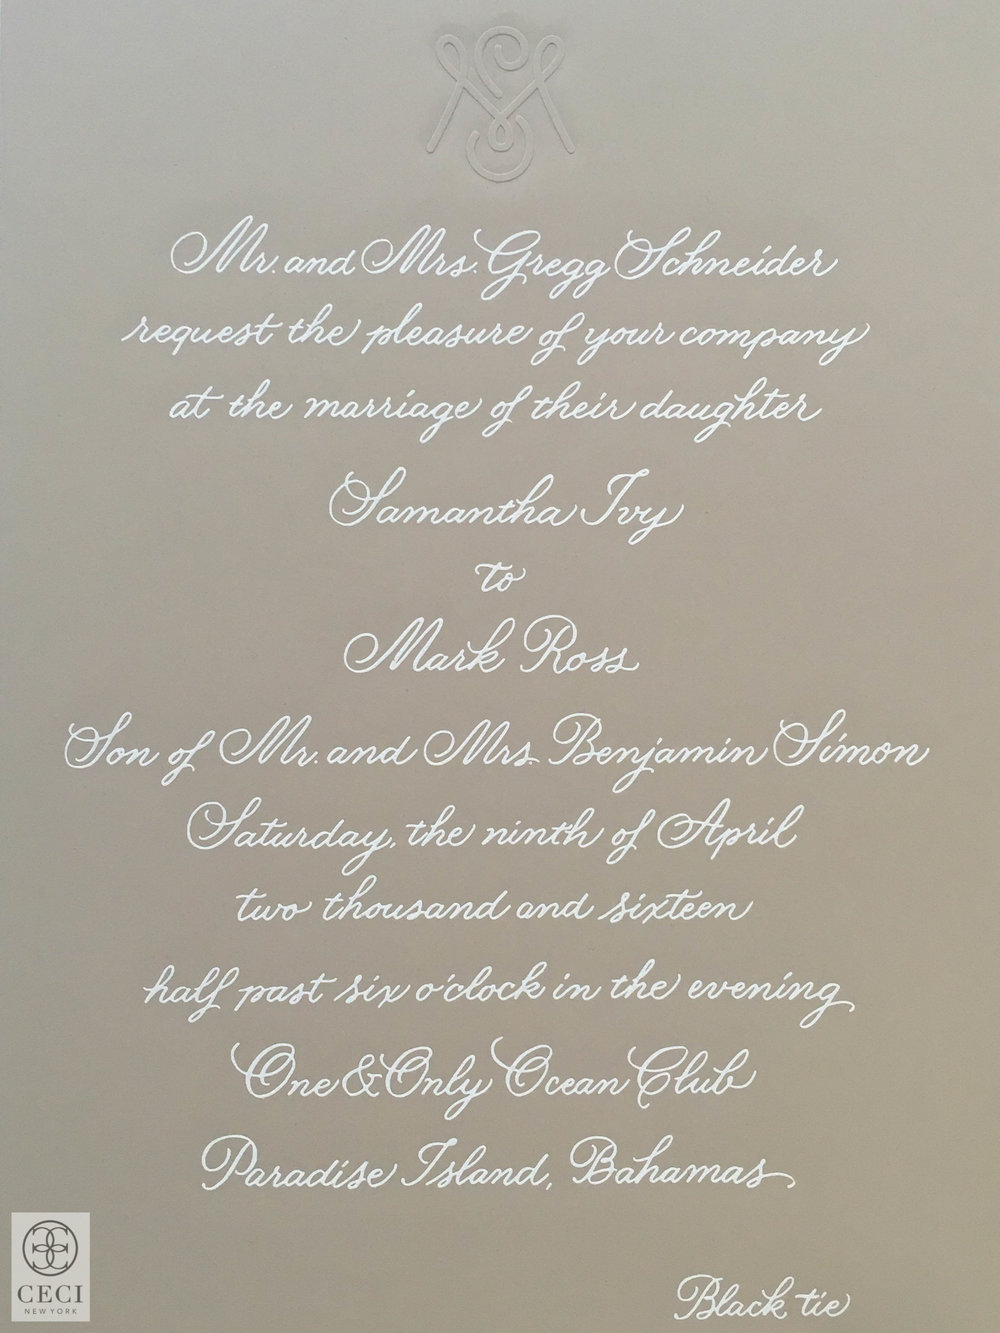 Ceci_New_York_Ceci_Style_Ceci_Johnson_Luxury_Lifestyle_Paradise_Island_Bahamas_Wedding_Engraved_Inspiration_Design_Custom_Couture_Personalized_Invitations_--14.jpg